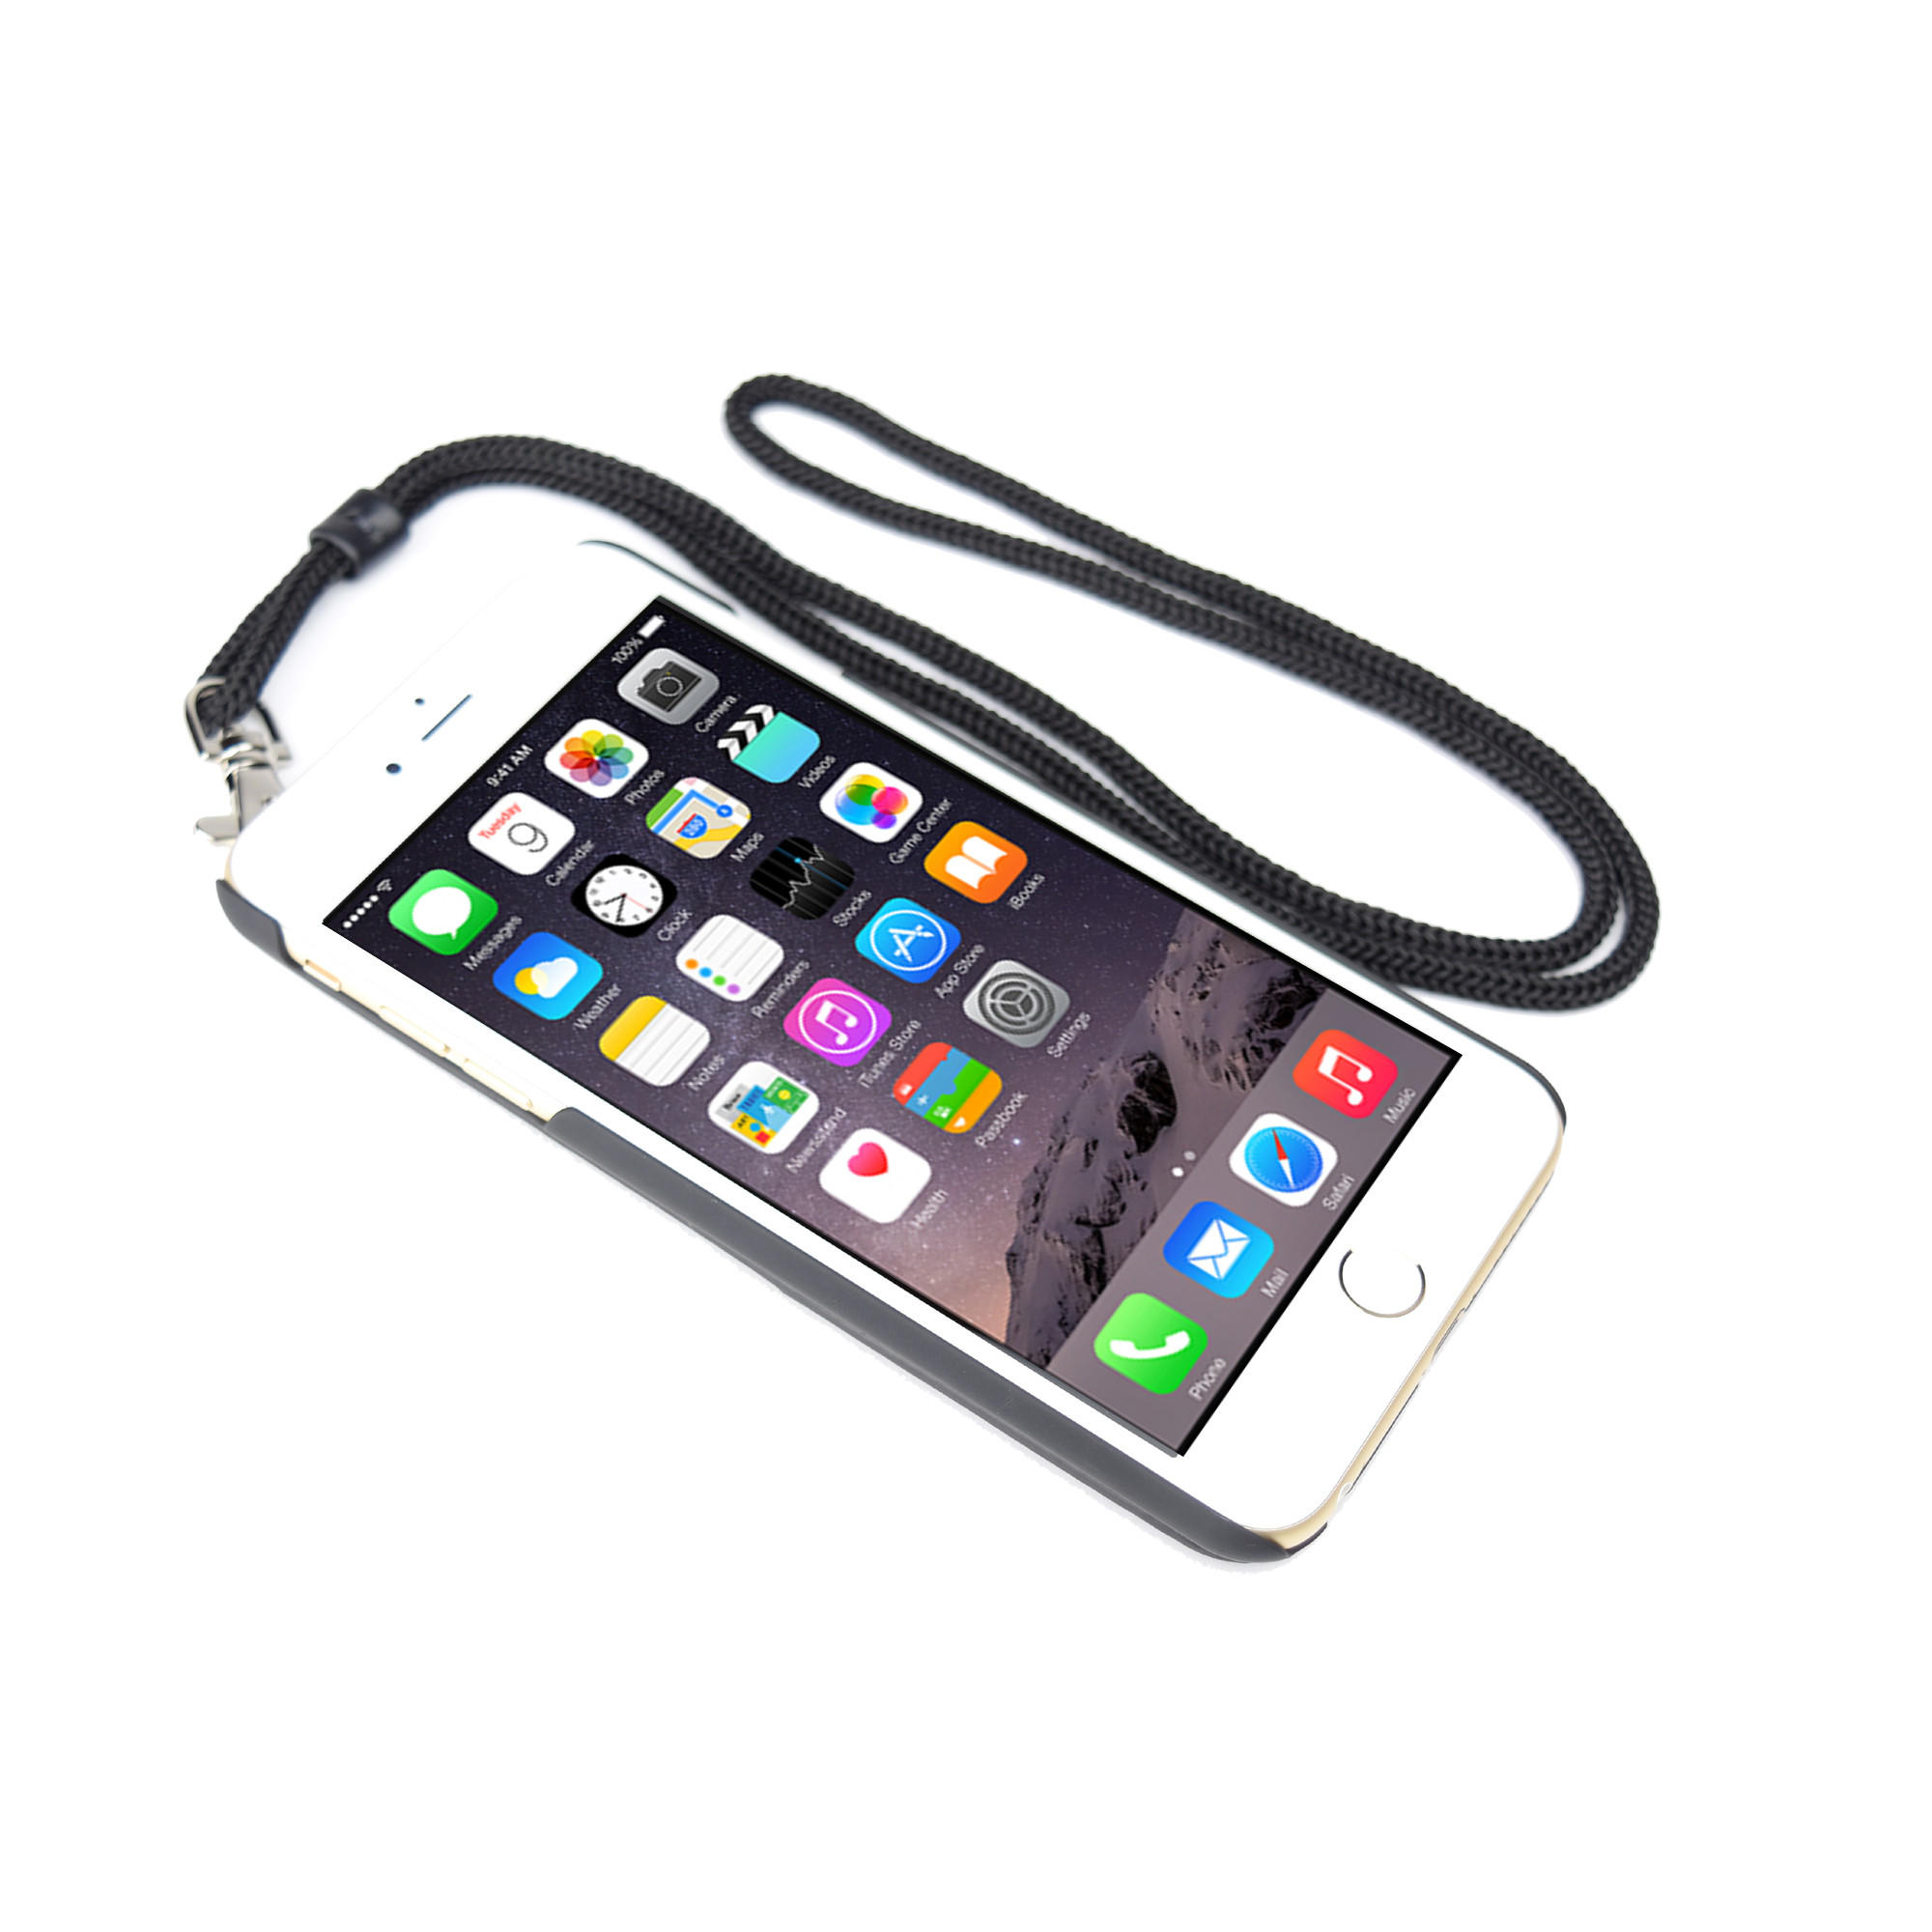 low priced 05835 d91e7 iPhone 6 Plus / 6s Plus Clip Leather Case with Wristlet and Neck Lanyard